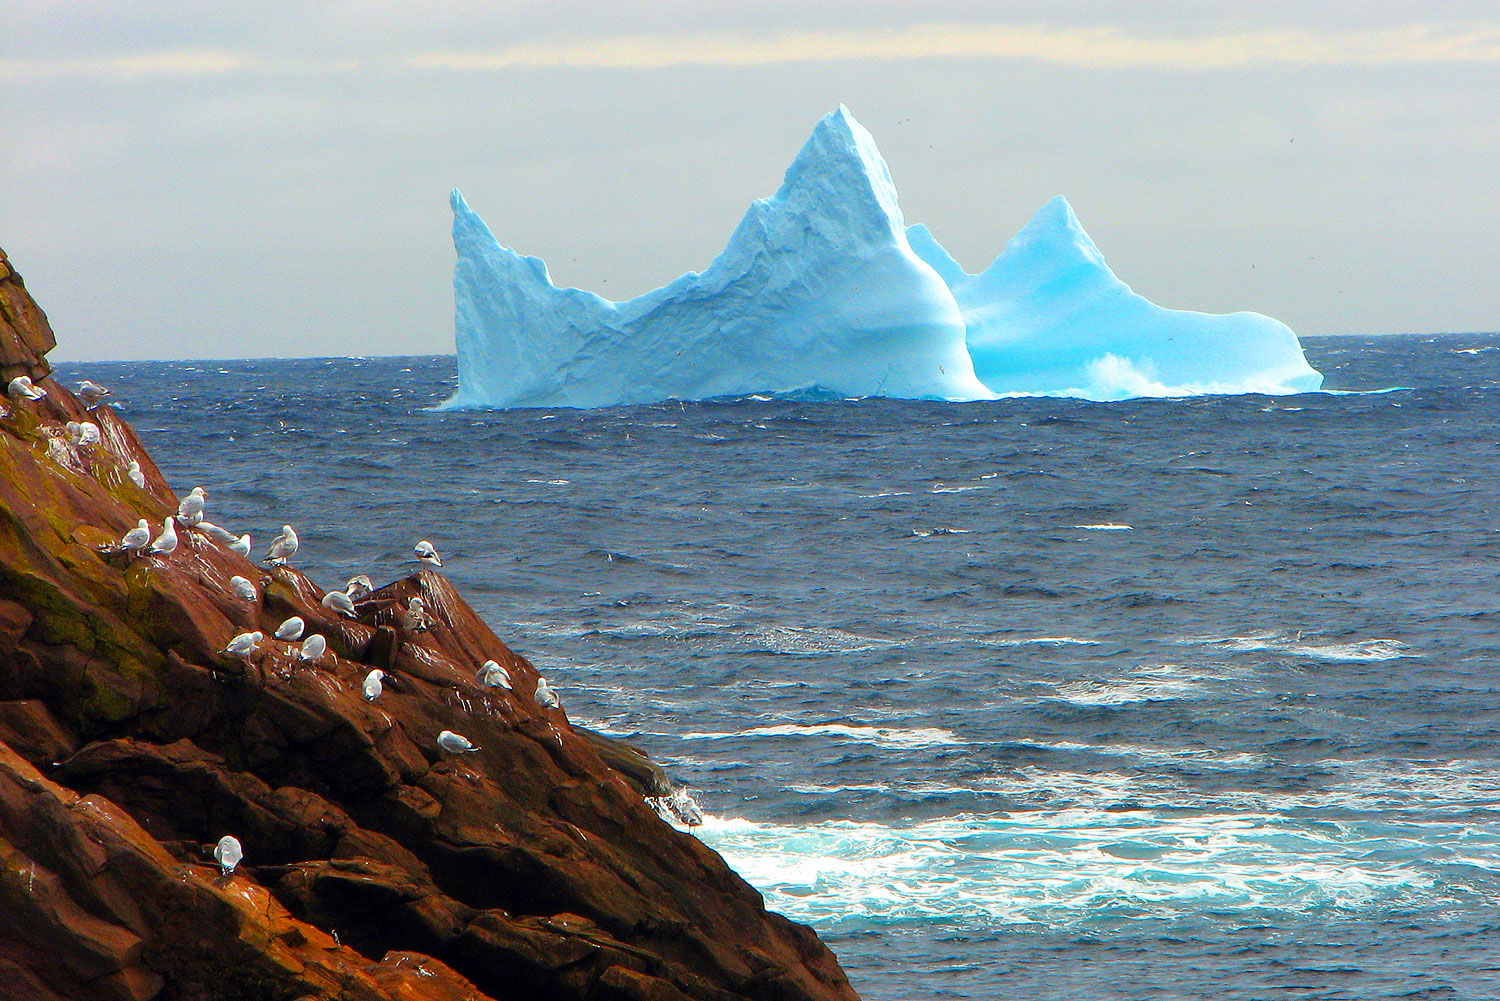 An iceberg from a northern glacier floats down the Newfoundland coast.